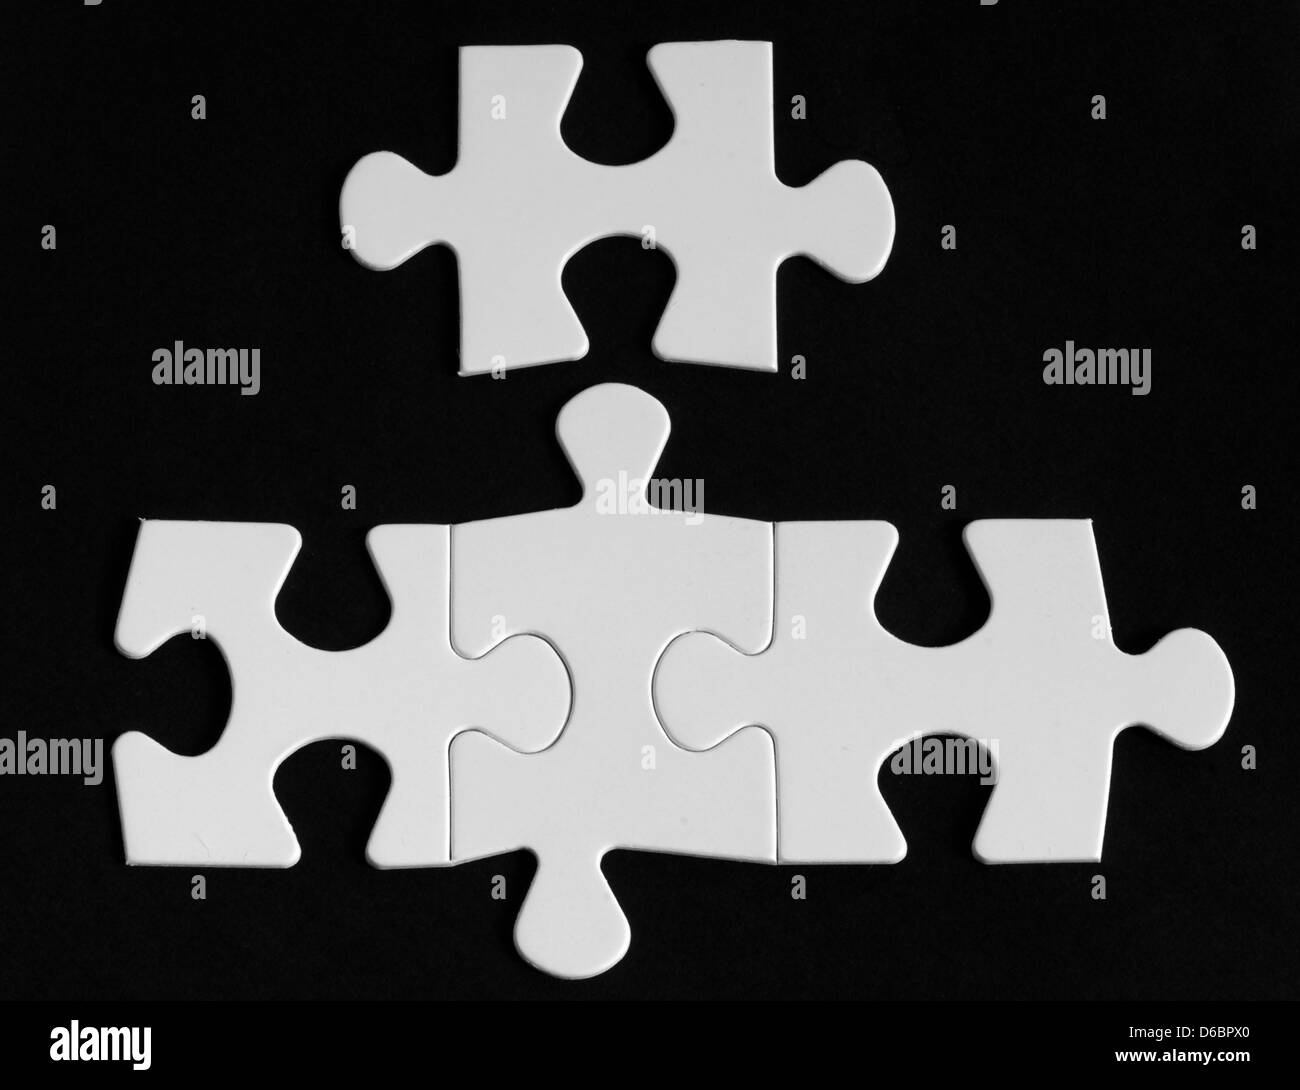 4 Pieces Of Puzzle Stock Photos & 4 Pieces Of Puzzle Stock Images ...